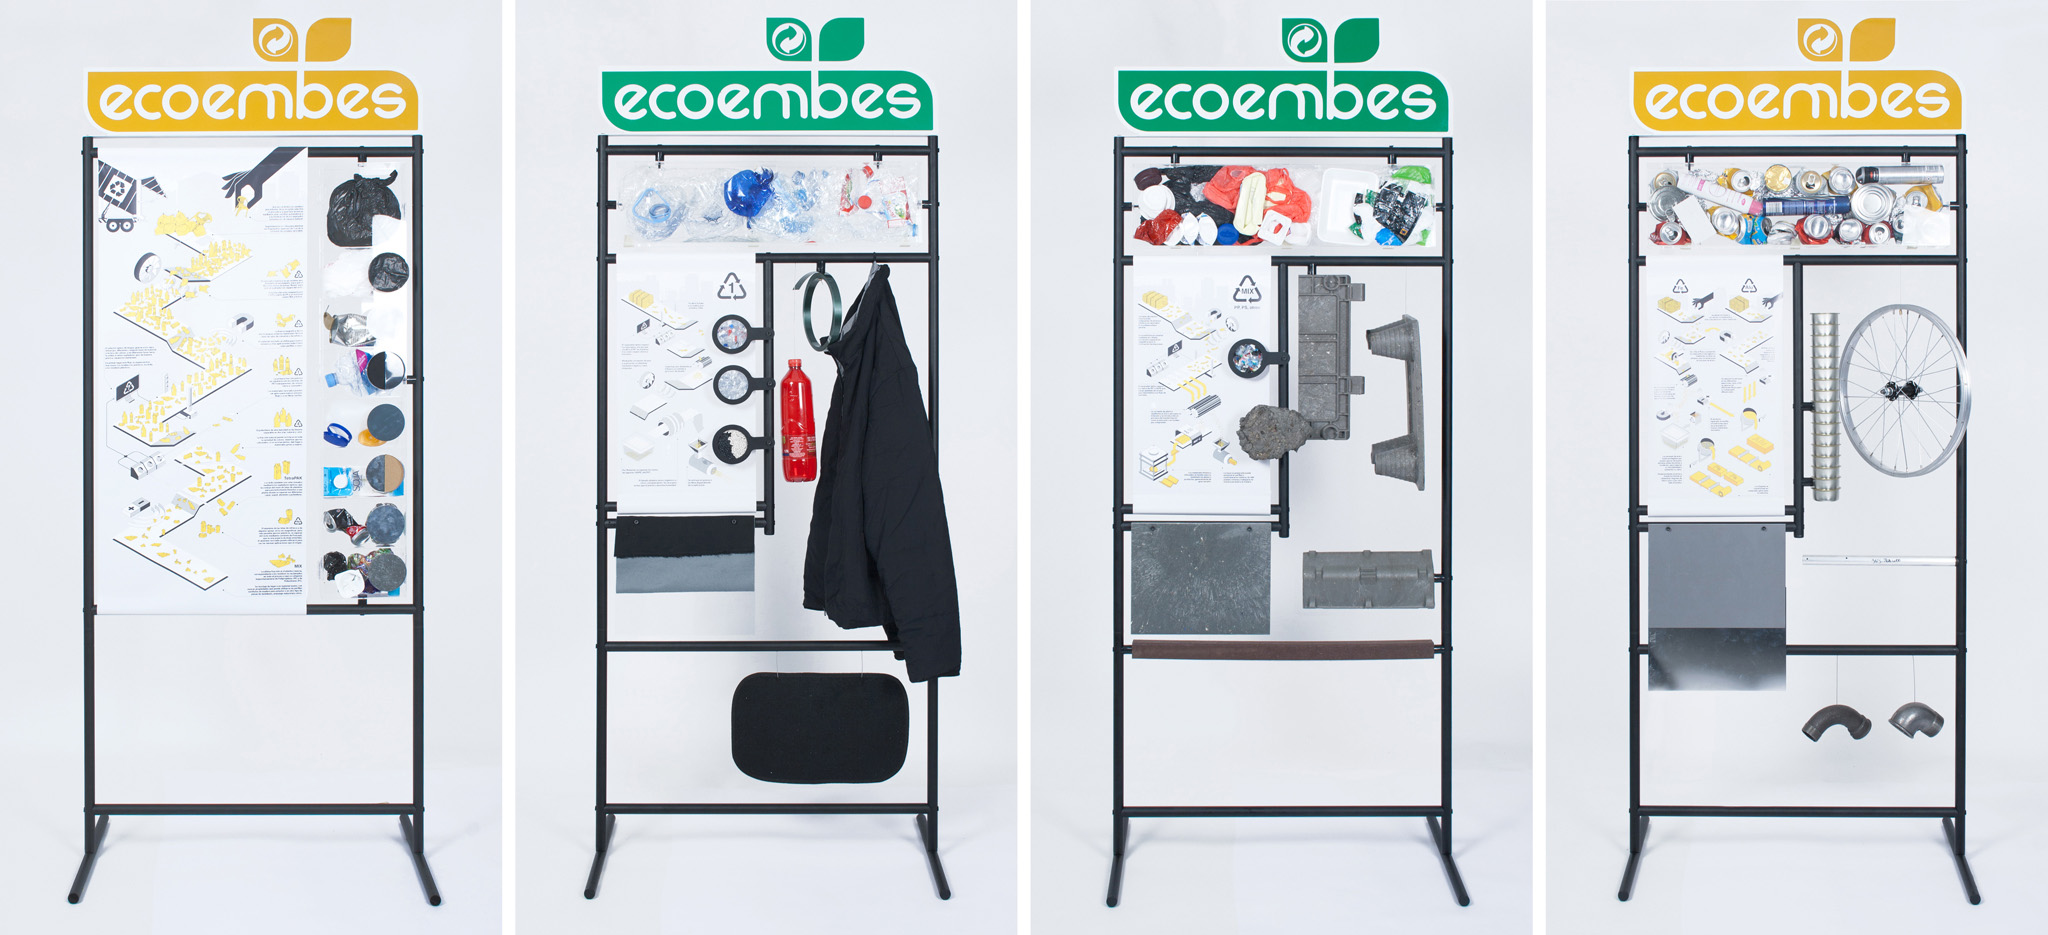 Ecoembes comunication campaign